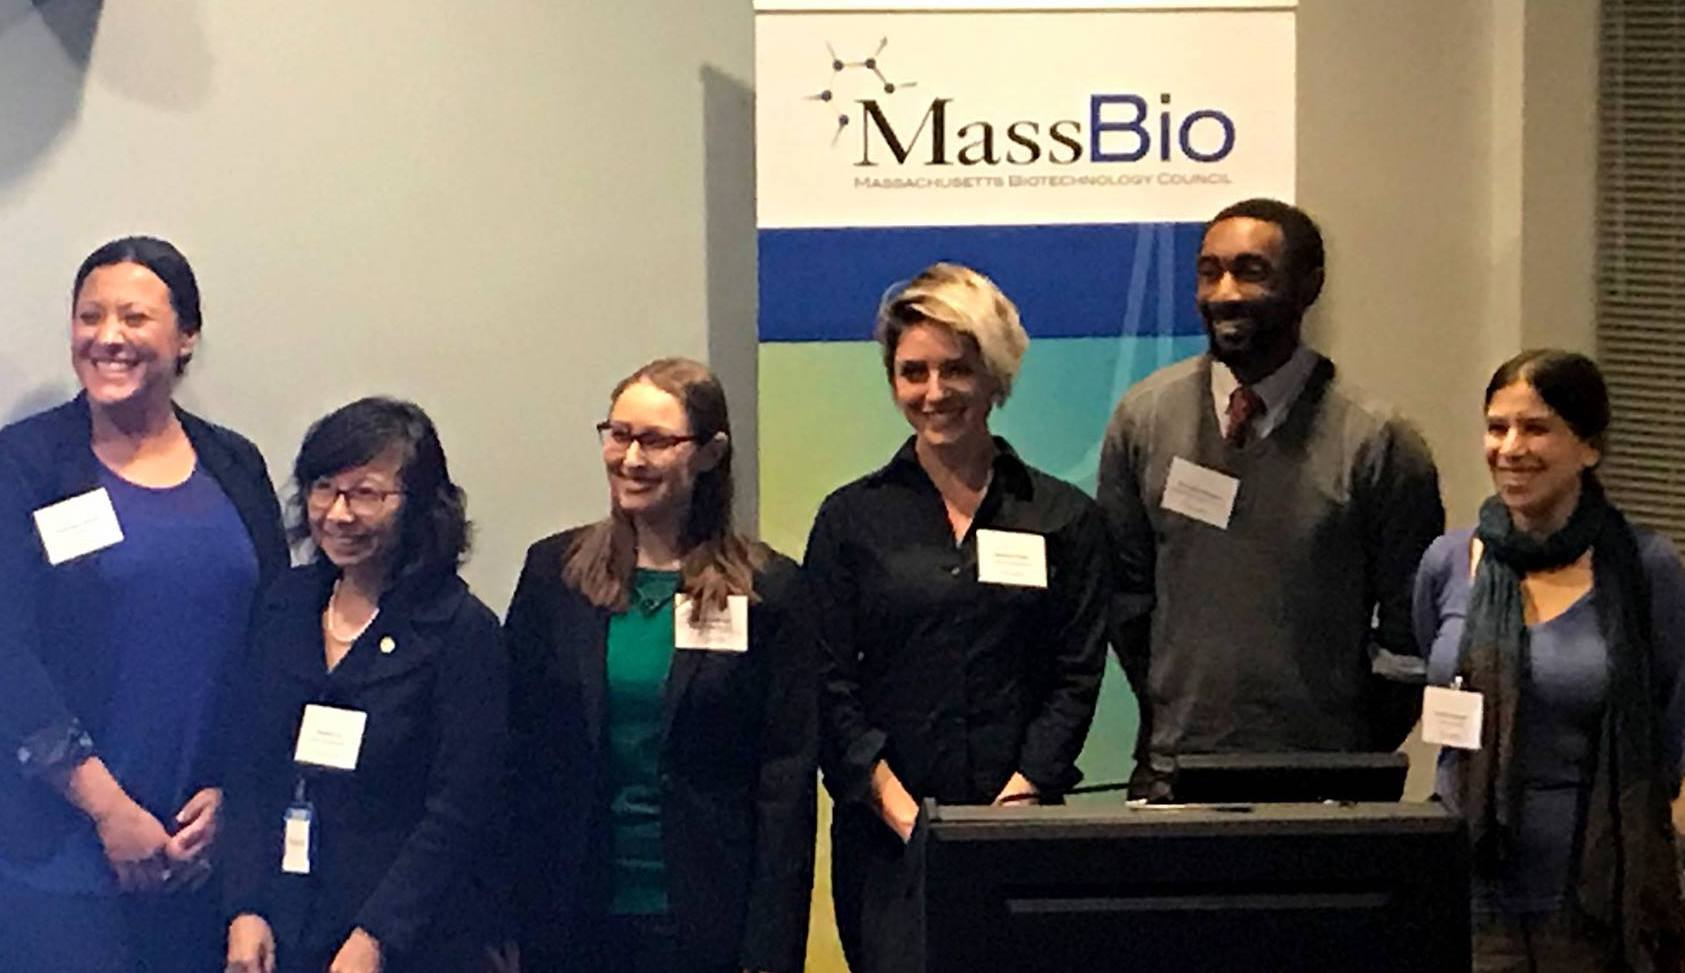 From left: Amanda LaFleur (IAPMD), Hanlan Liu Ph.D. (NEDMDG), Laura B. Kleiman Ph.D. (Cures within Reach), Jessica Polka (FoR), Brandon Morgan (The LEAH Project), Sarah Dykstra (Boston Postdoctoral Association)